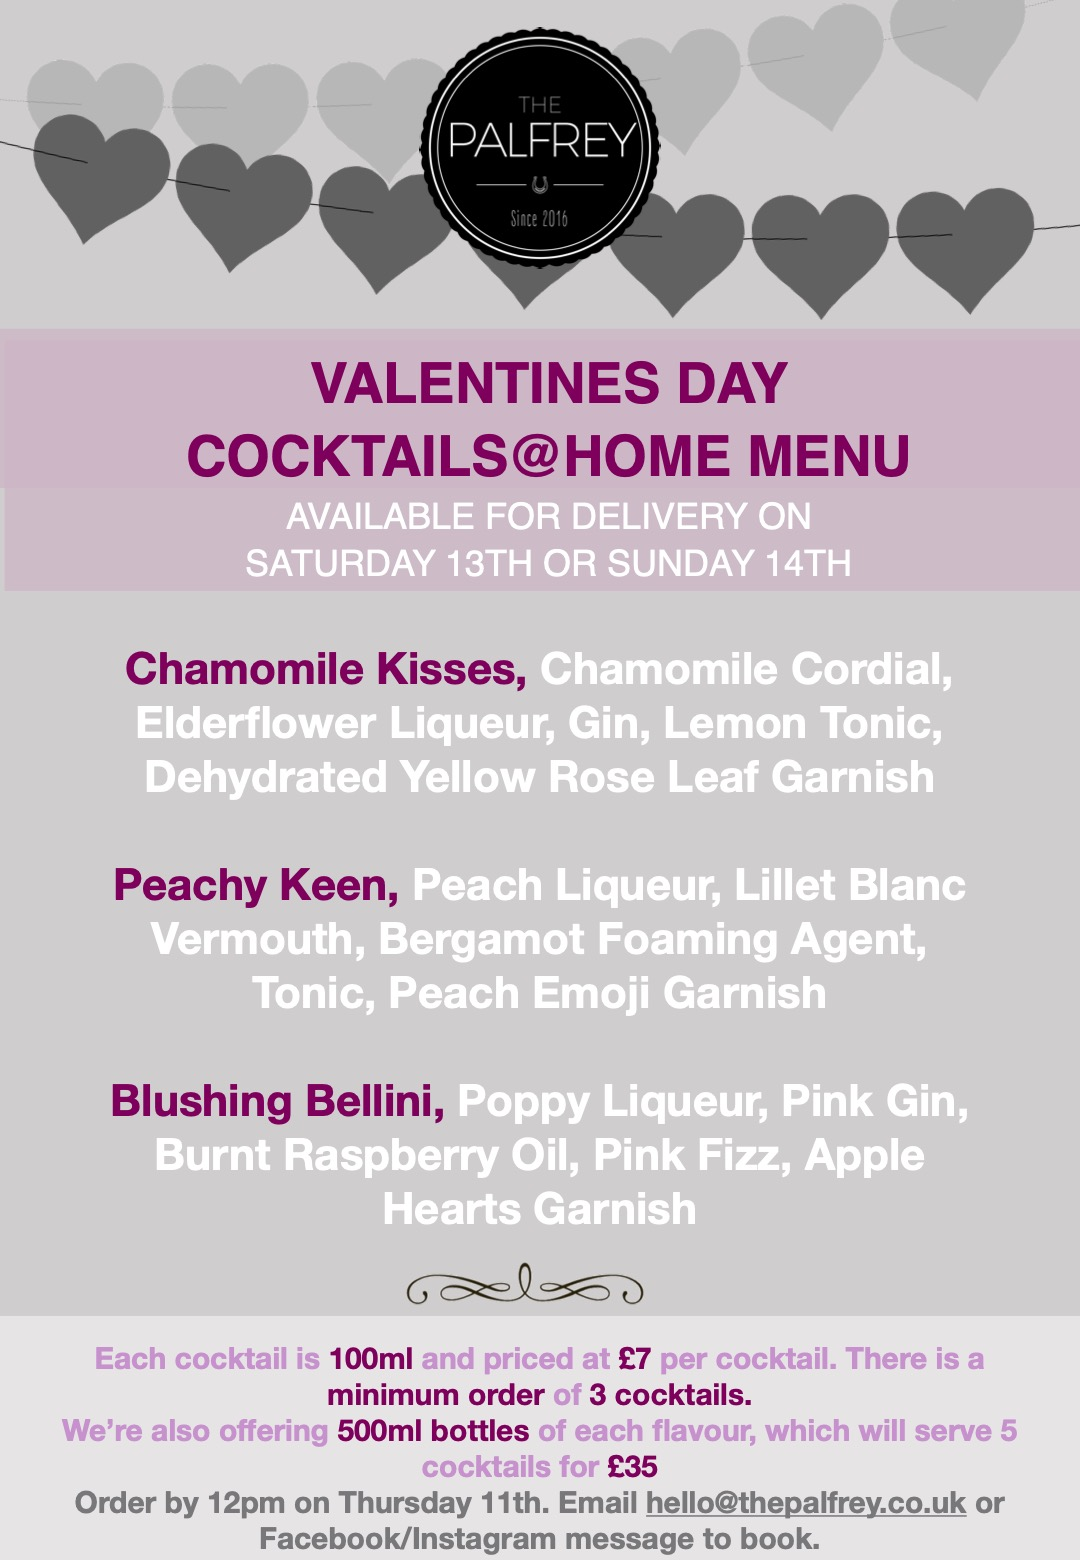 Palfrey Menu Cocktails @ Home - Valentines 2